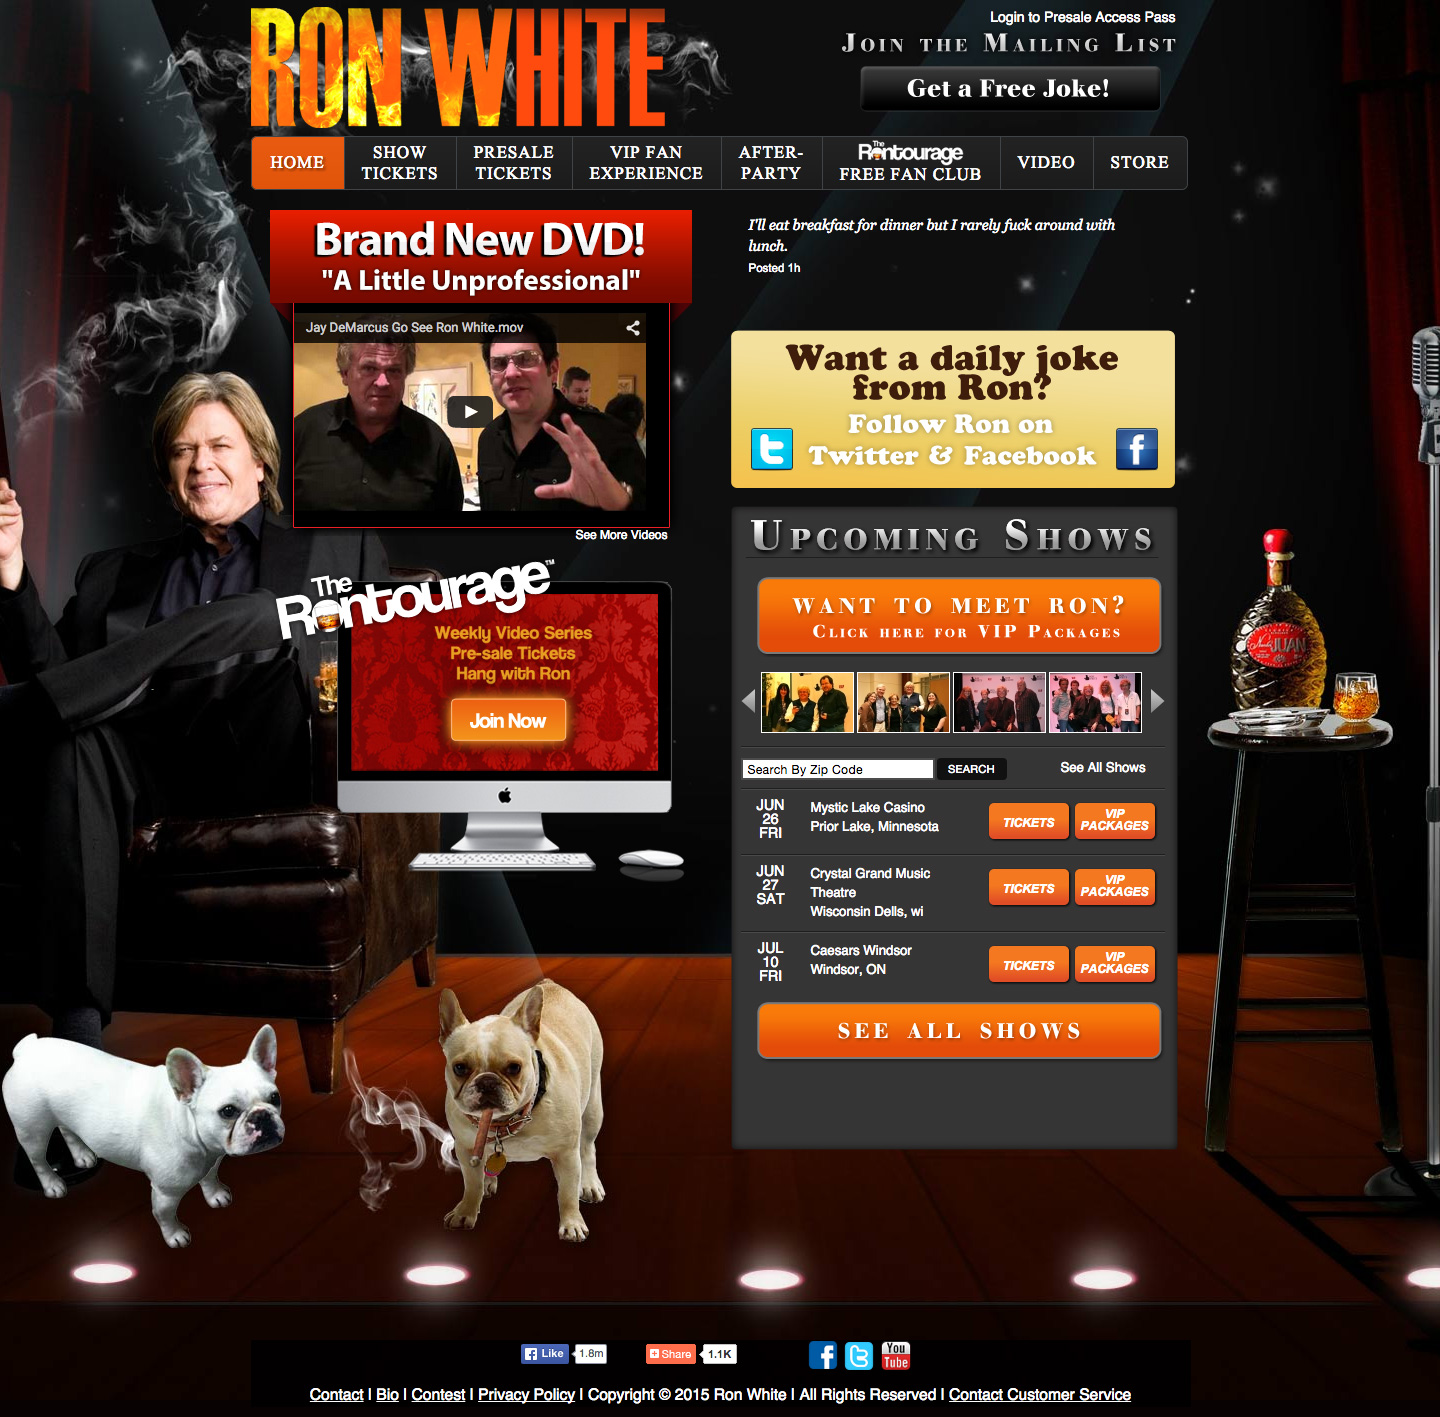 Ron White website built by Aquatic in San Francisco